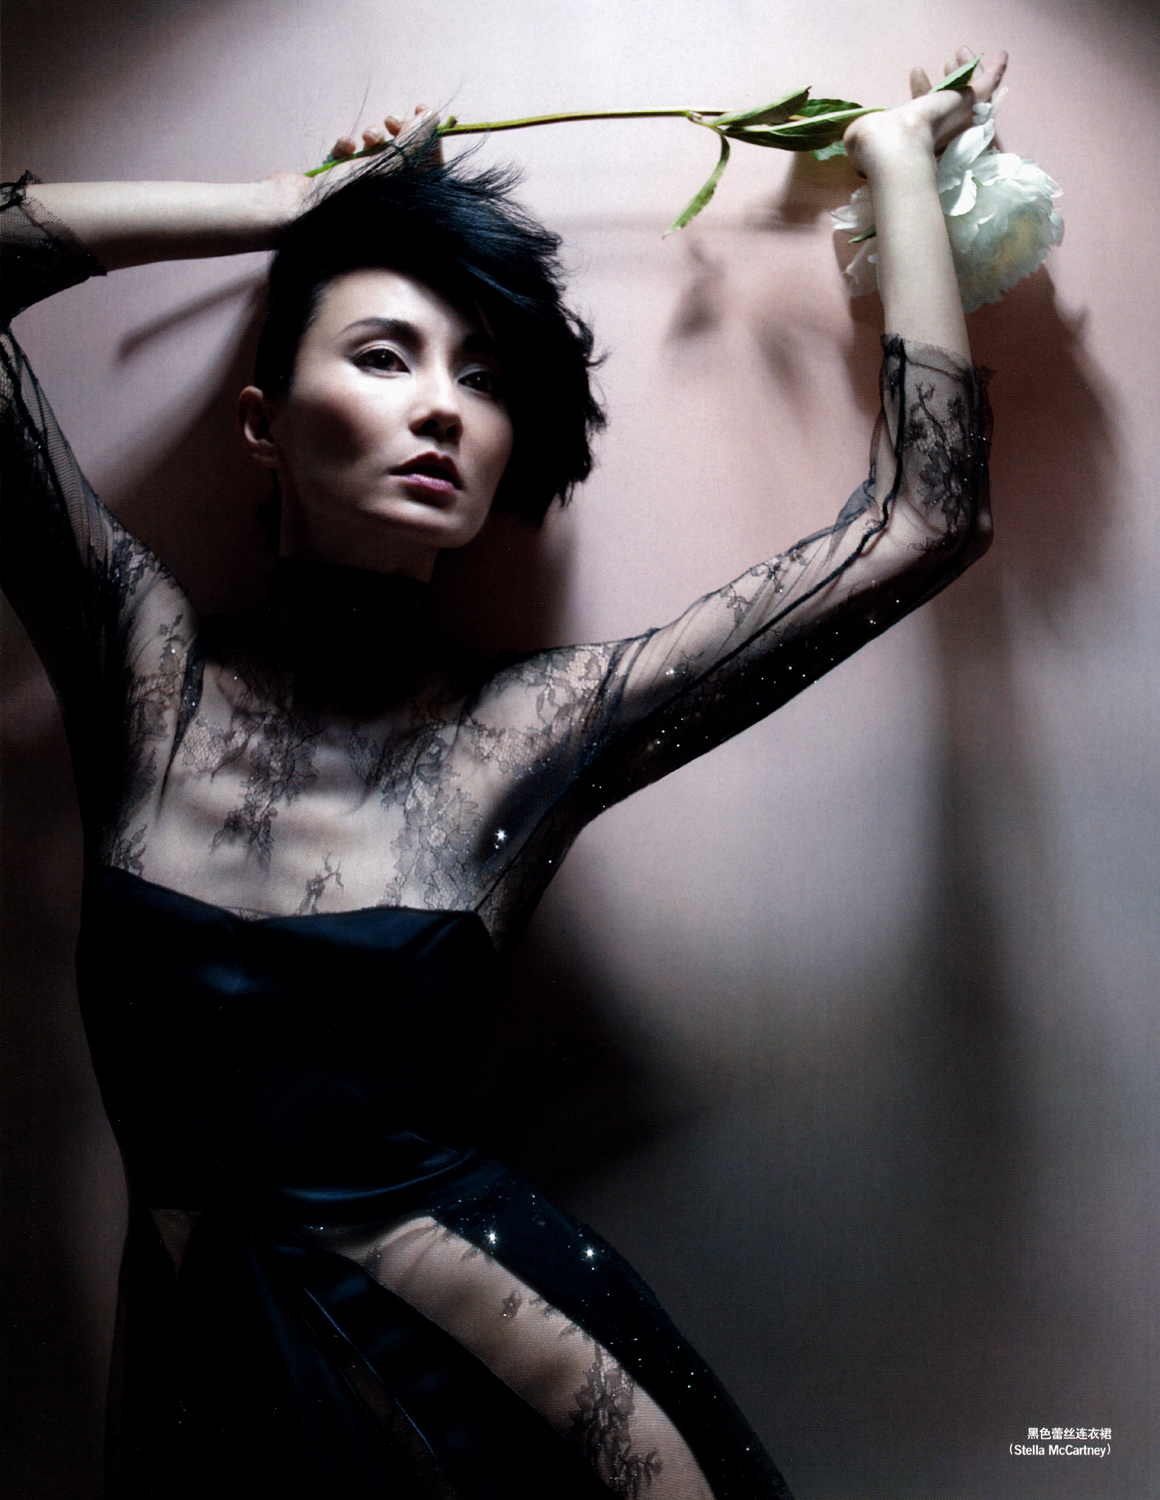 maggie cheung 2016maggie cheung instagram, maggie cheung 2016, maggie cheung inglourious basterds, maggie cheung stephen chow, maggie cheung height weight, maggie cheung husband olivier assayas, maggie cheung leslie cheung, maggie cheung tumblr, maggie cheung filmography, maggie cheung, maggie cheung 2015, maggie cheung 2014, maggie cheung latest news, maggie cheung man yuk, maggie cheung in the mood for love, maggie cheung wiki, maggie cheung facebook, maggie cheung imdb, maggie cheung young, maggie cheung jackie chan